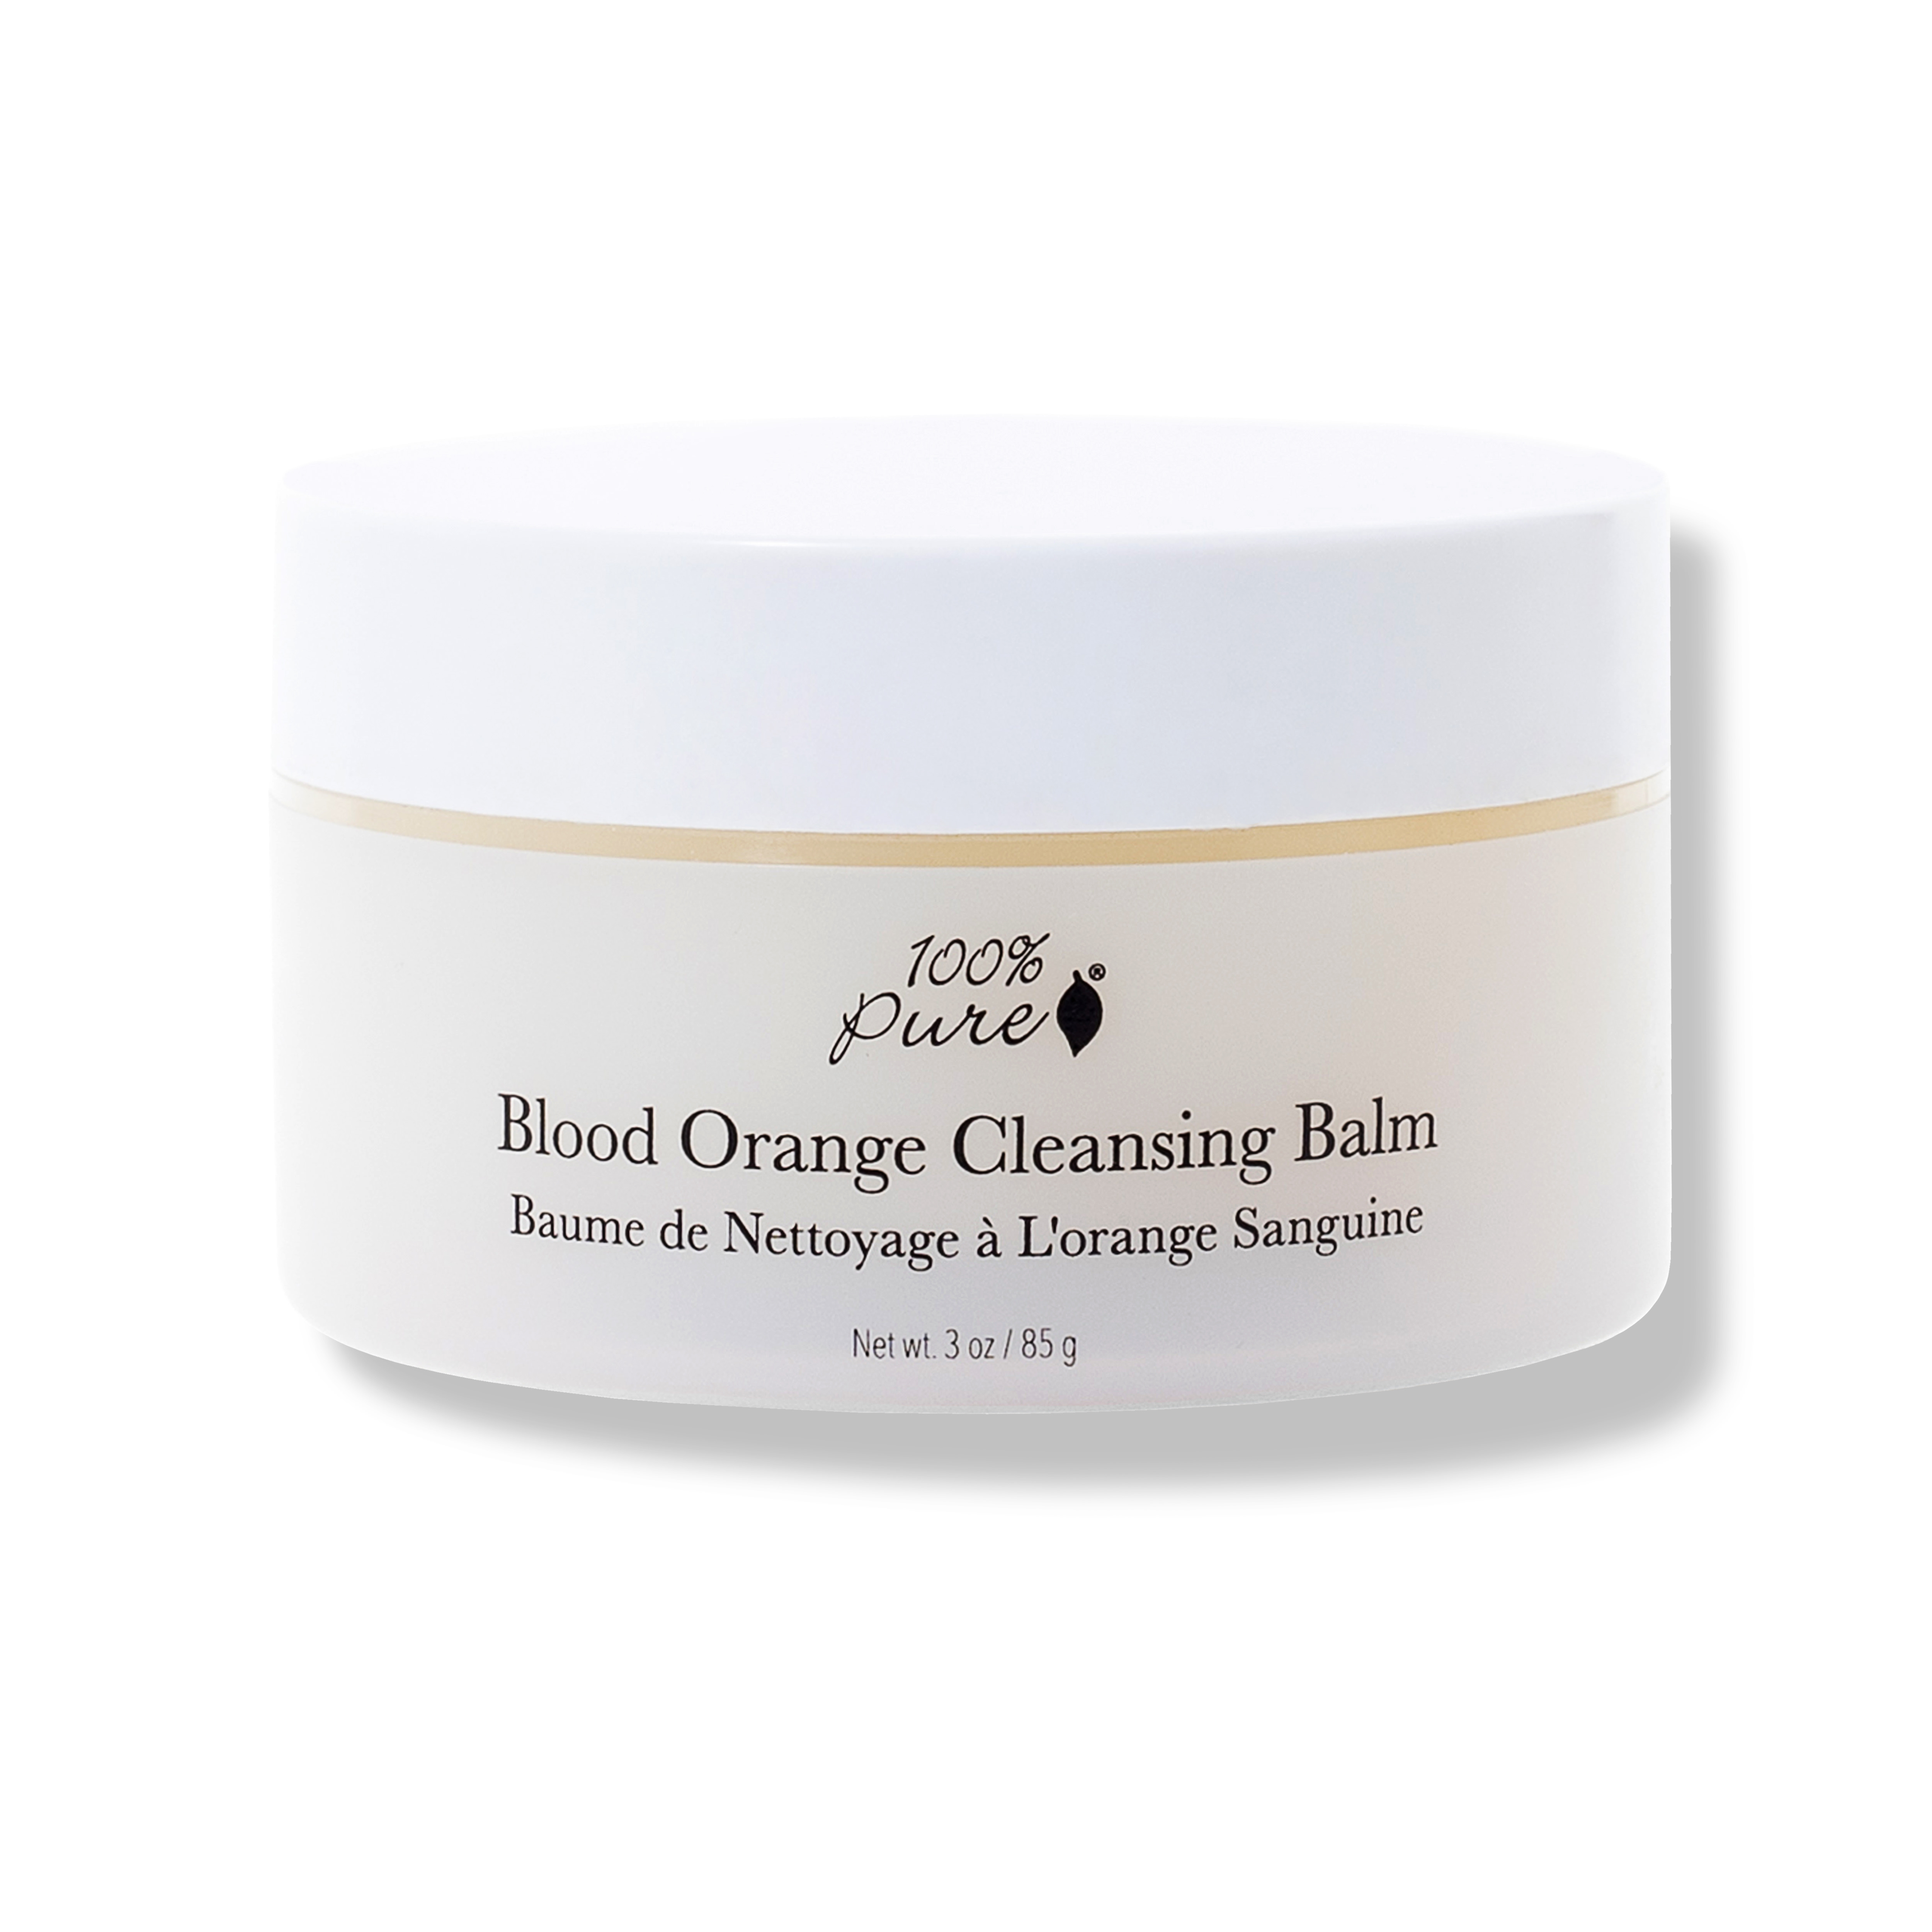 Product Grid - Blood Orange Cleansing Balm